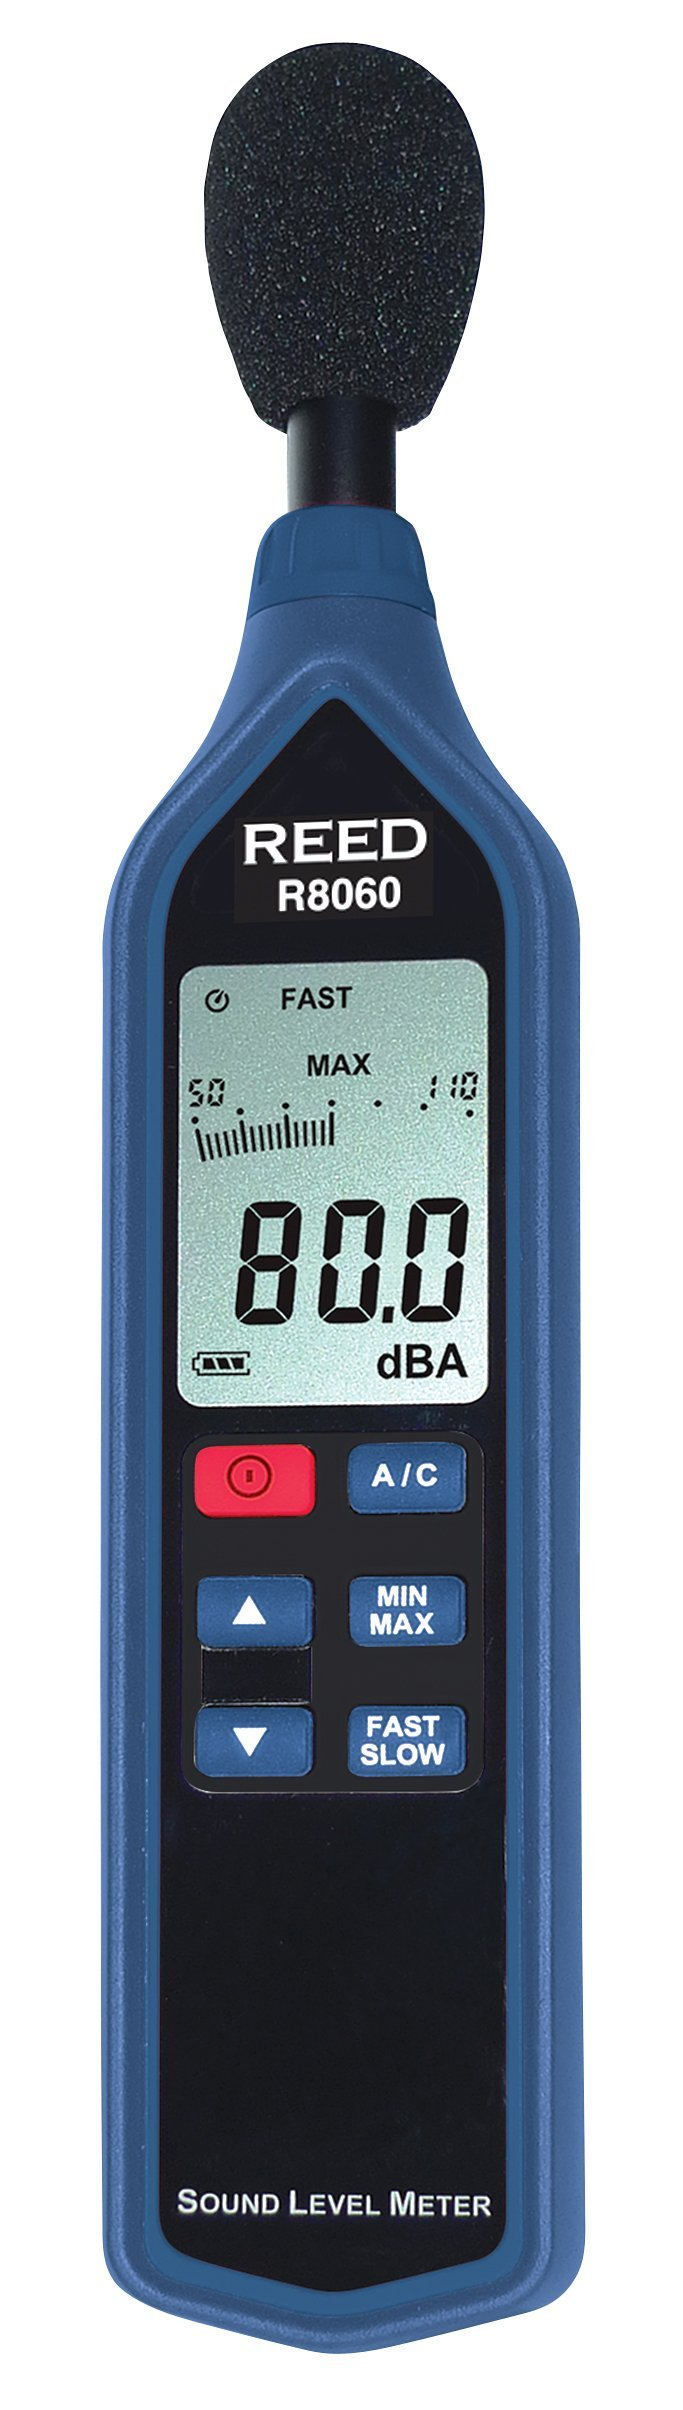 REED Instruments R8060 Sound Level Meter with